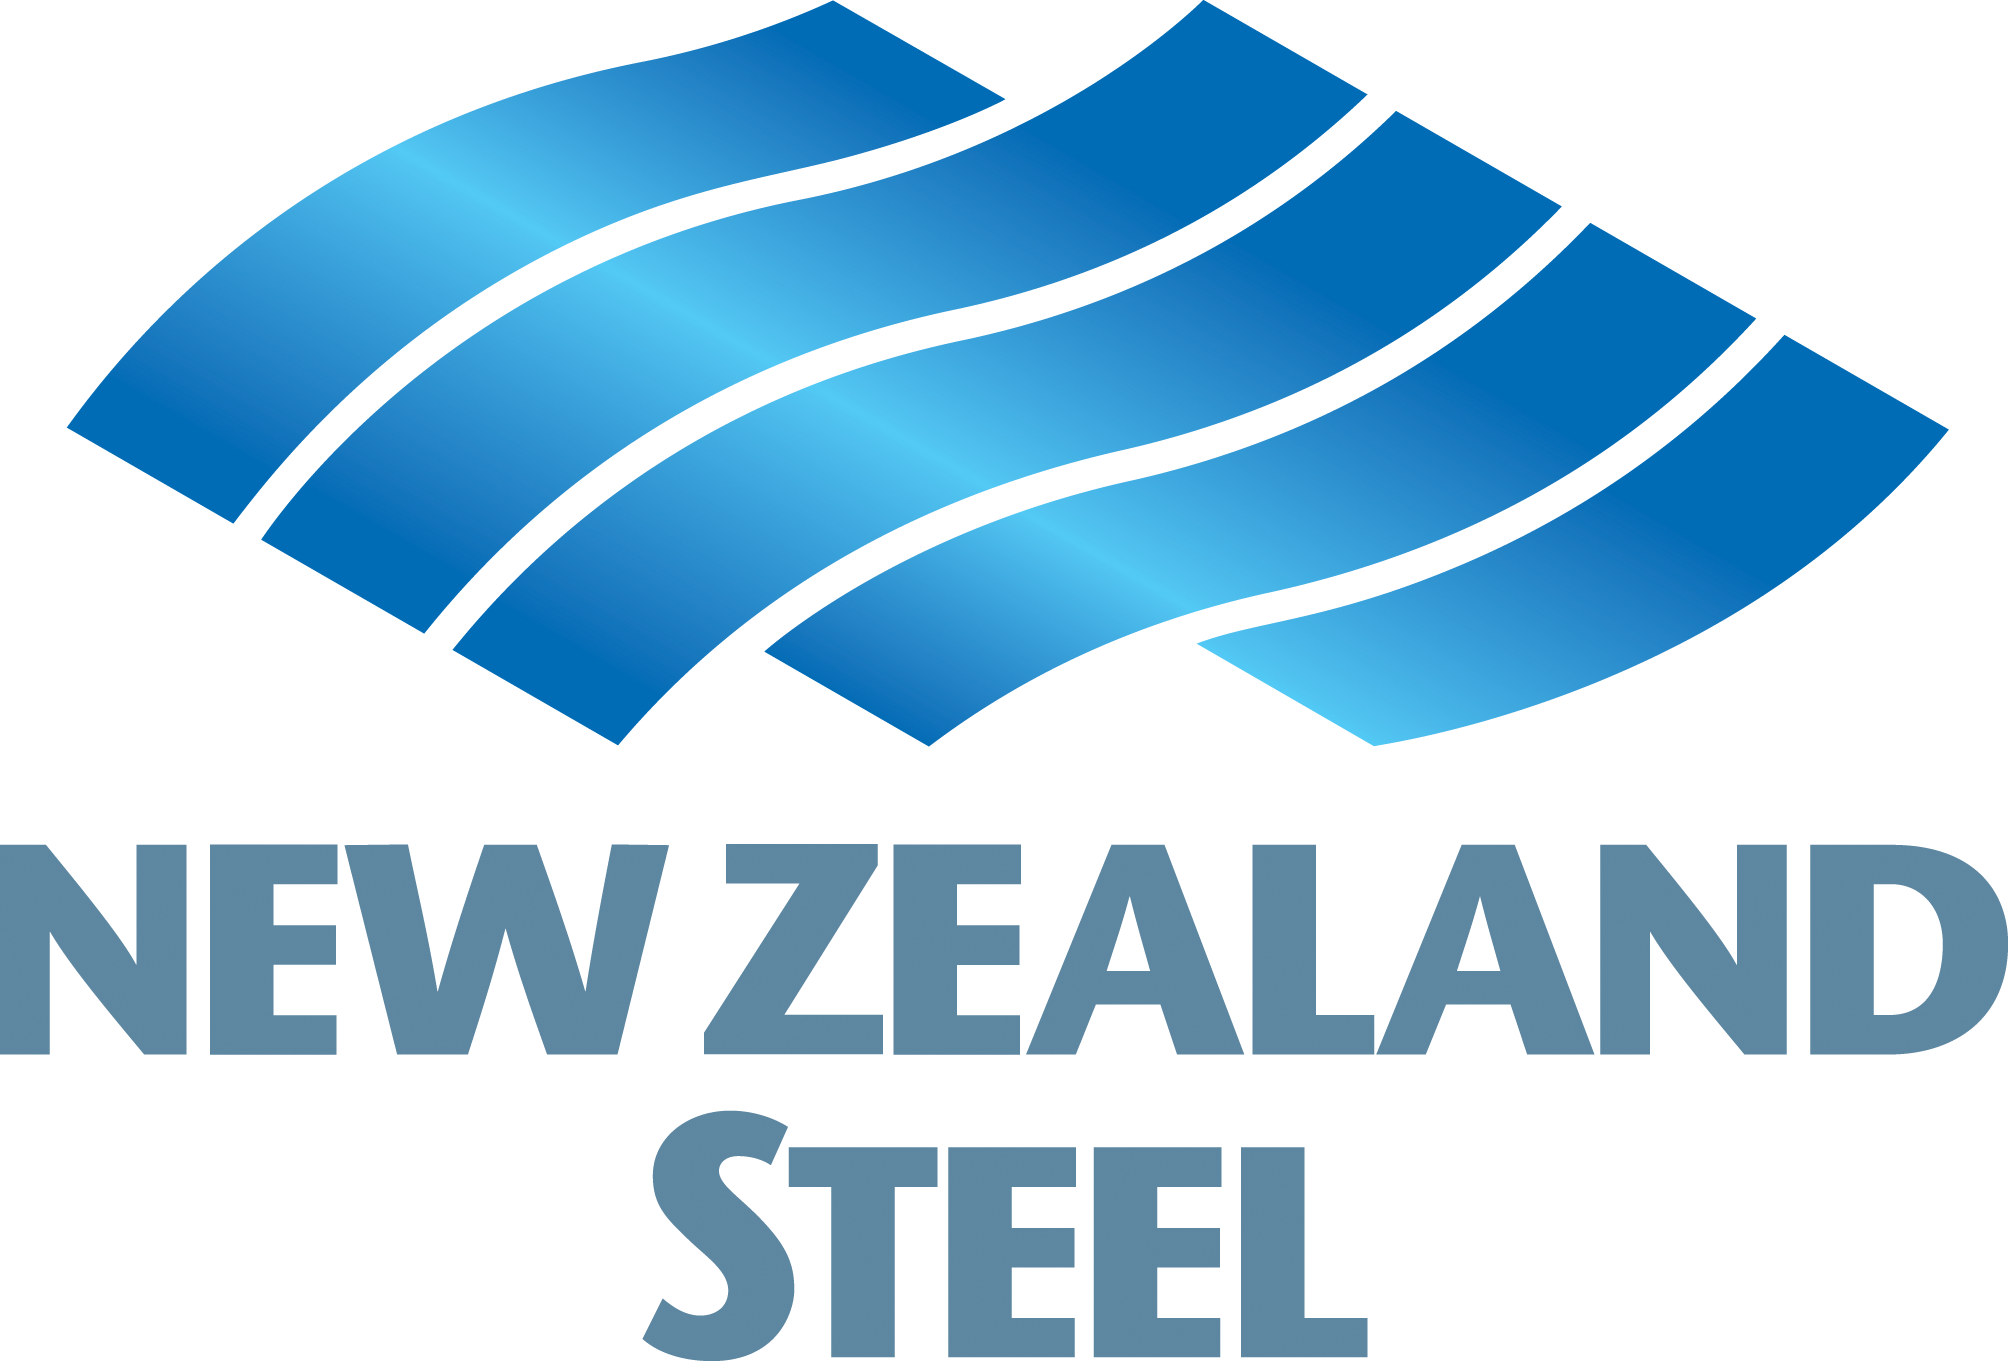 New Zealand Steel Limited